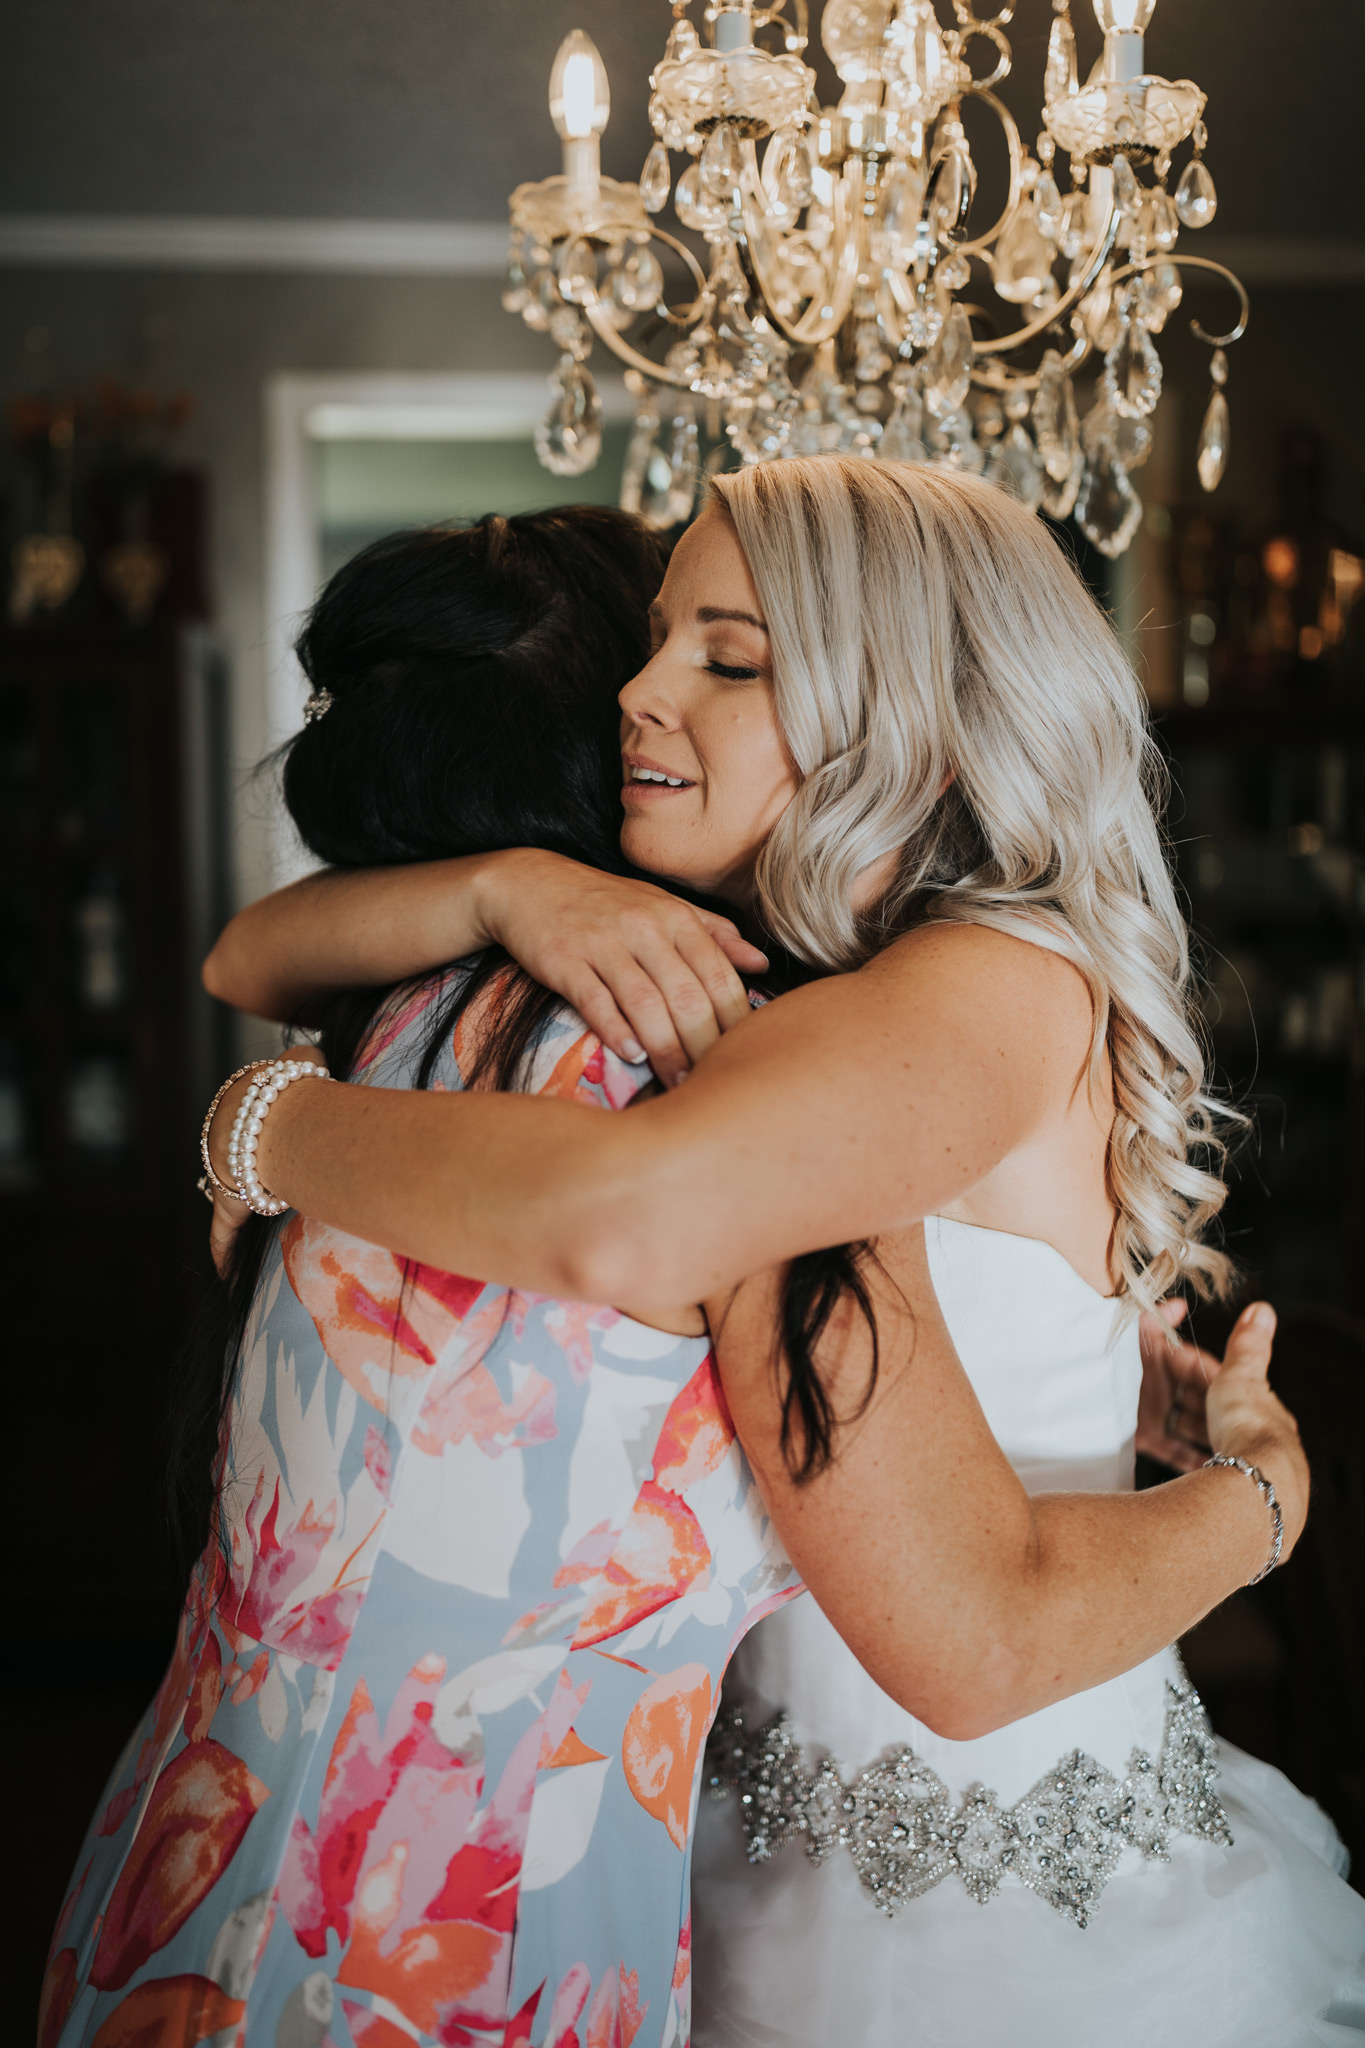 emotional hug between the bride and her mother